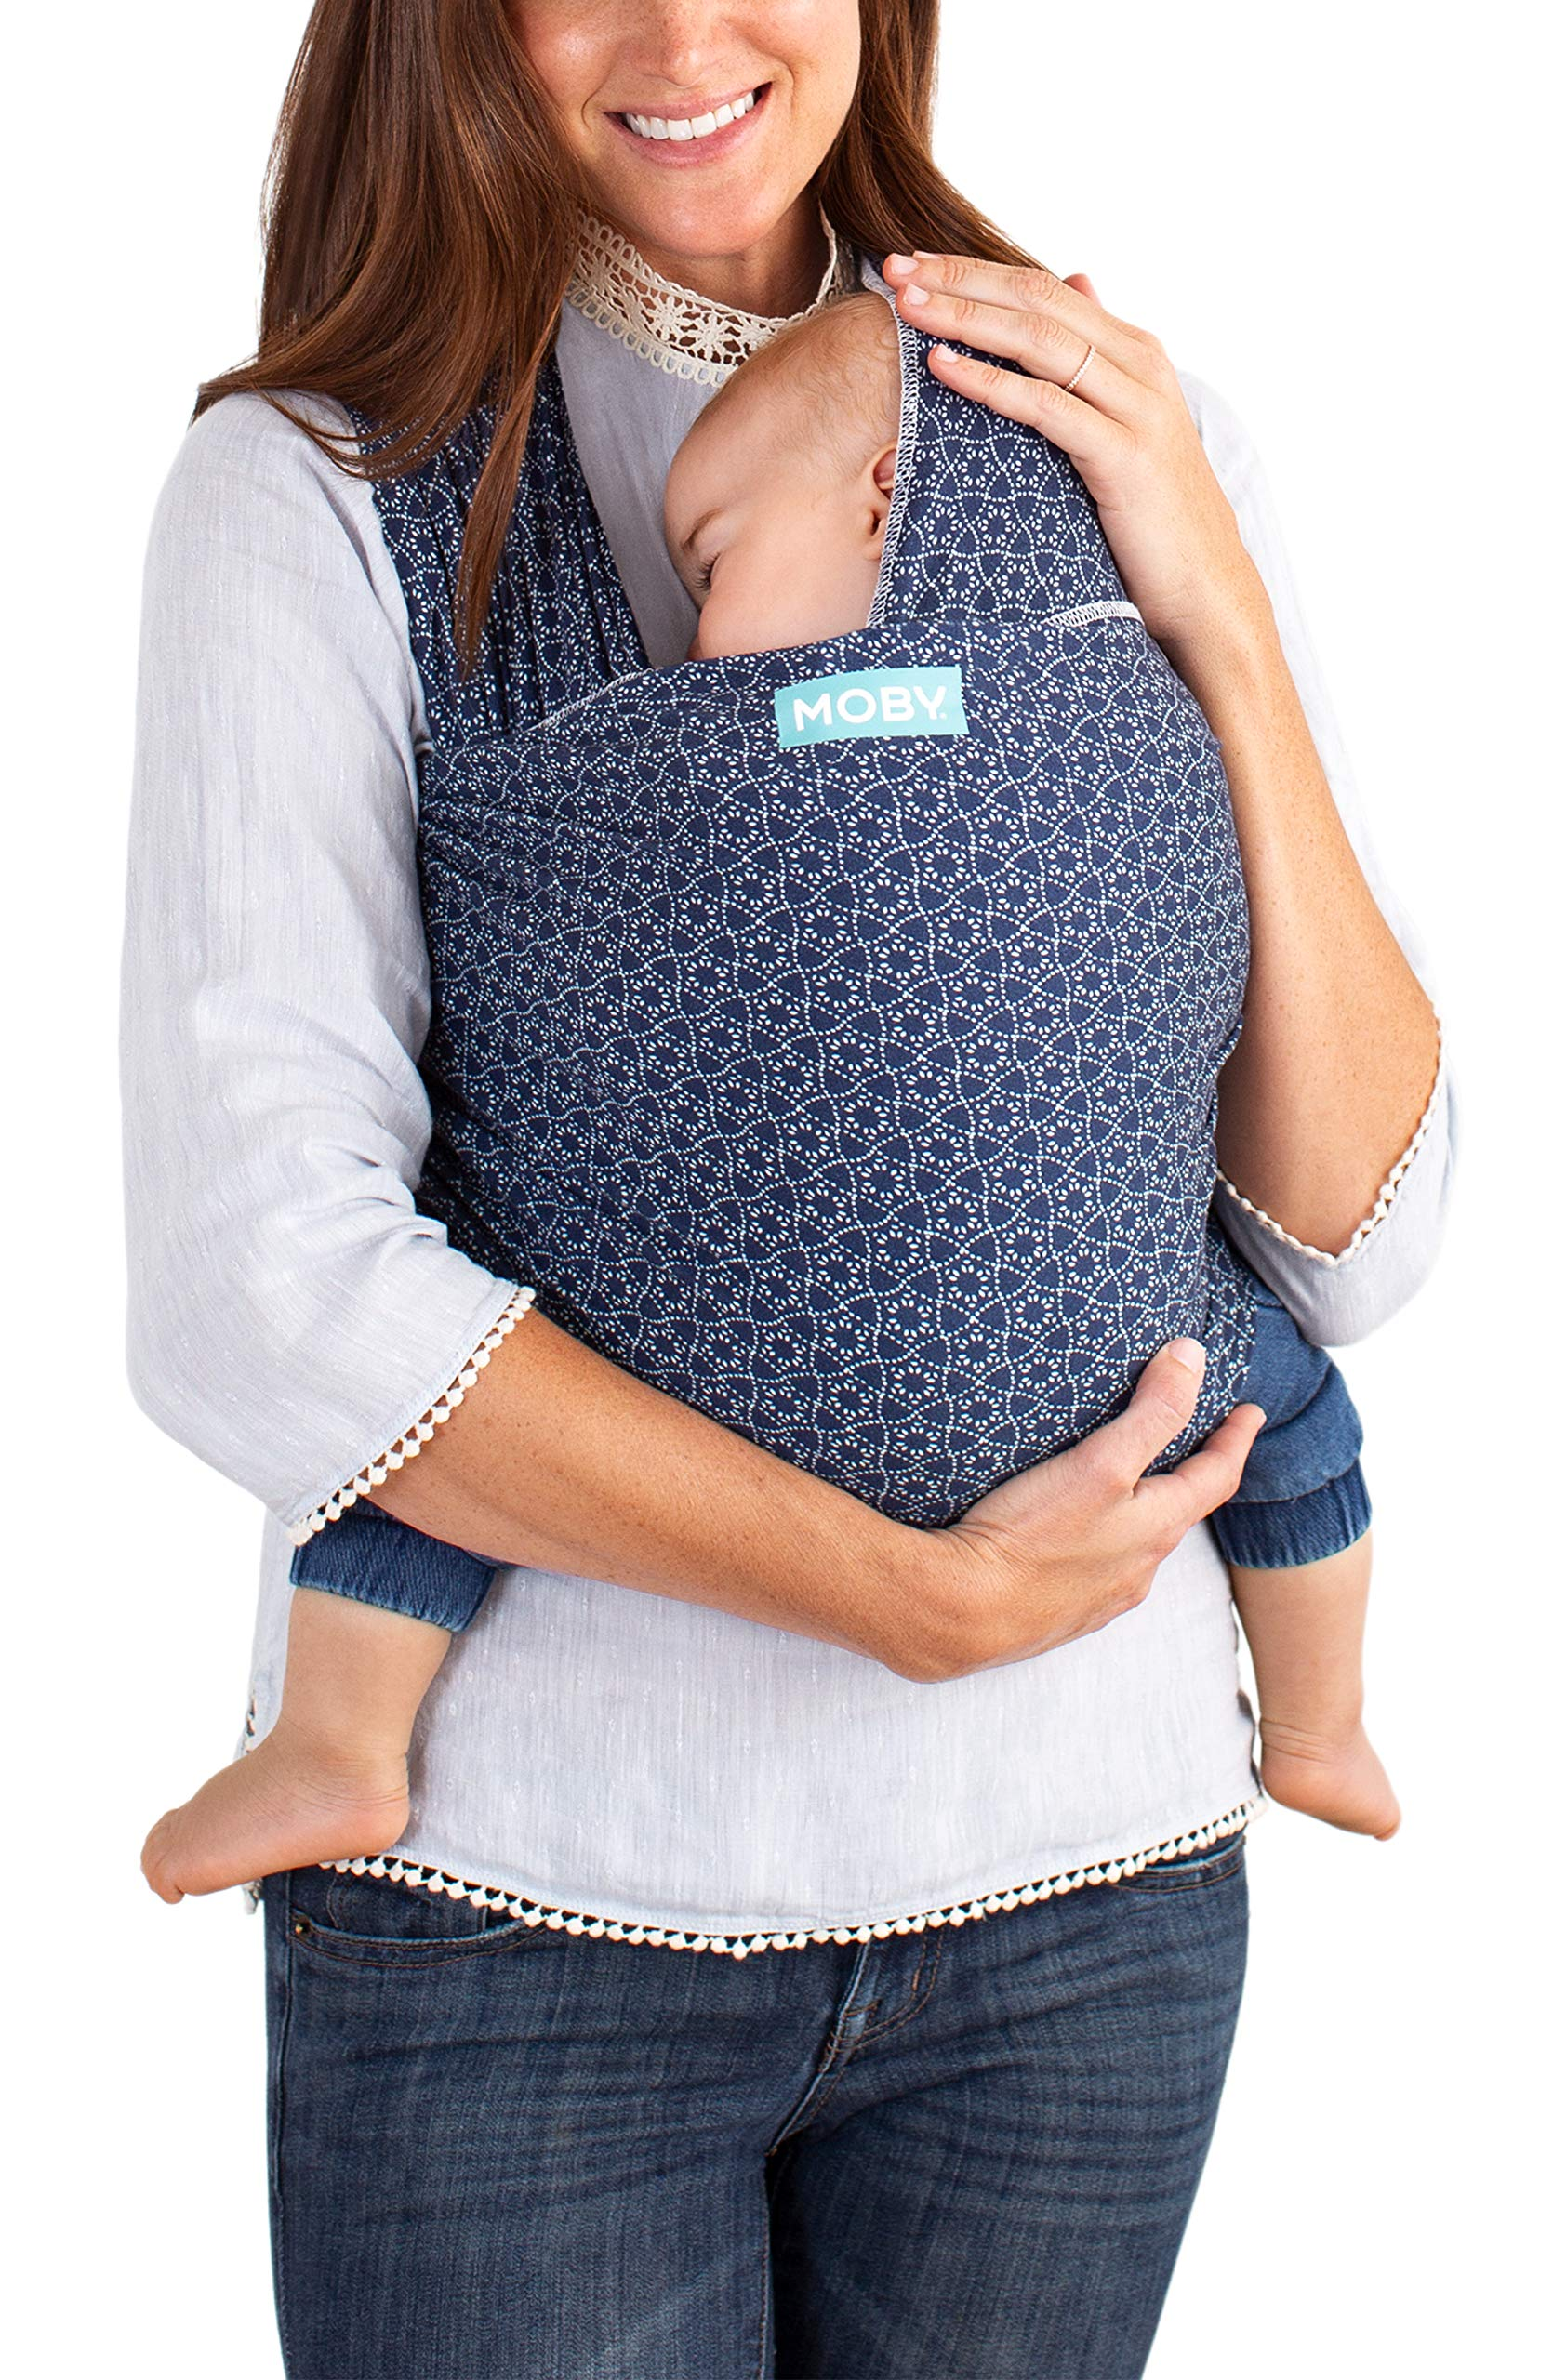 MOBY Evolution Baby Wrap Carrier for Newborn to Toddler up to 30lbs, Baby Sling from Birth, One Size Fits All, Breathable Stretchy Made from 70% Viscose 30% Cotton, Unisex Moby 70% Viscose / 30% Cotton Knit One-size-fits-all Grows with baby, from newborn to toddler 6